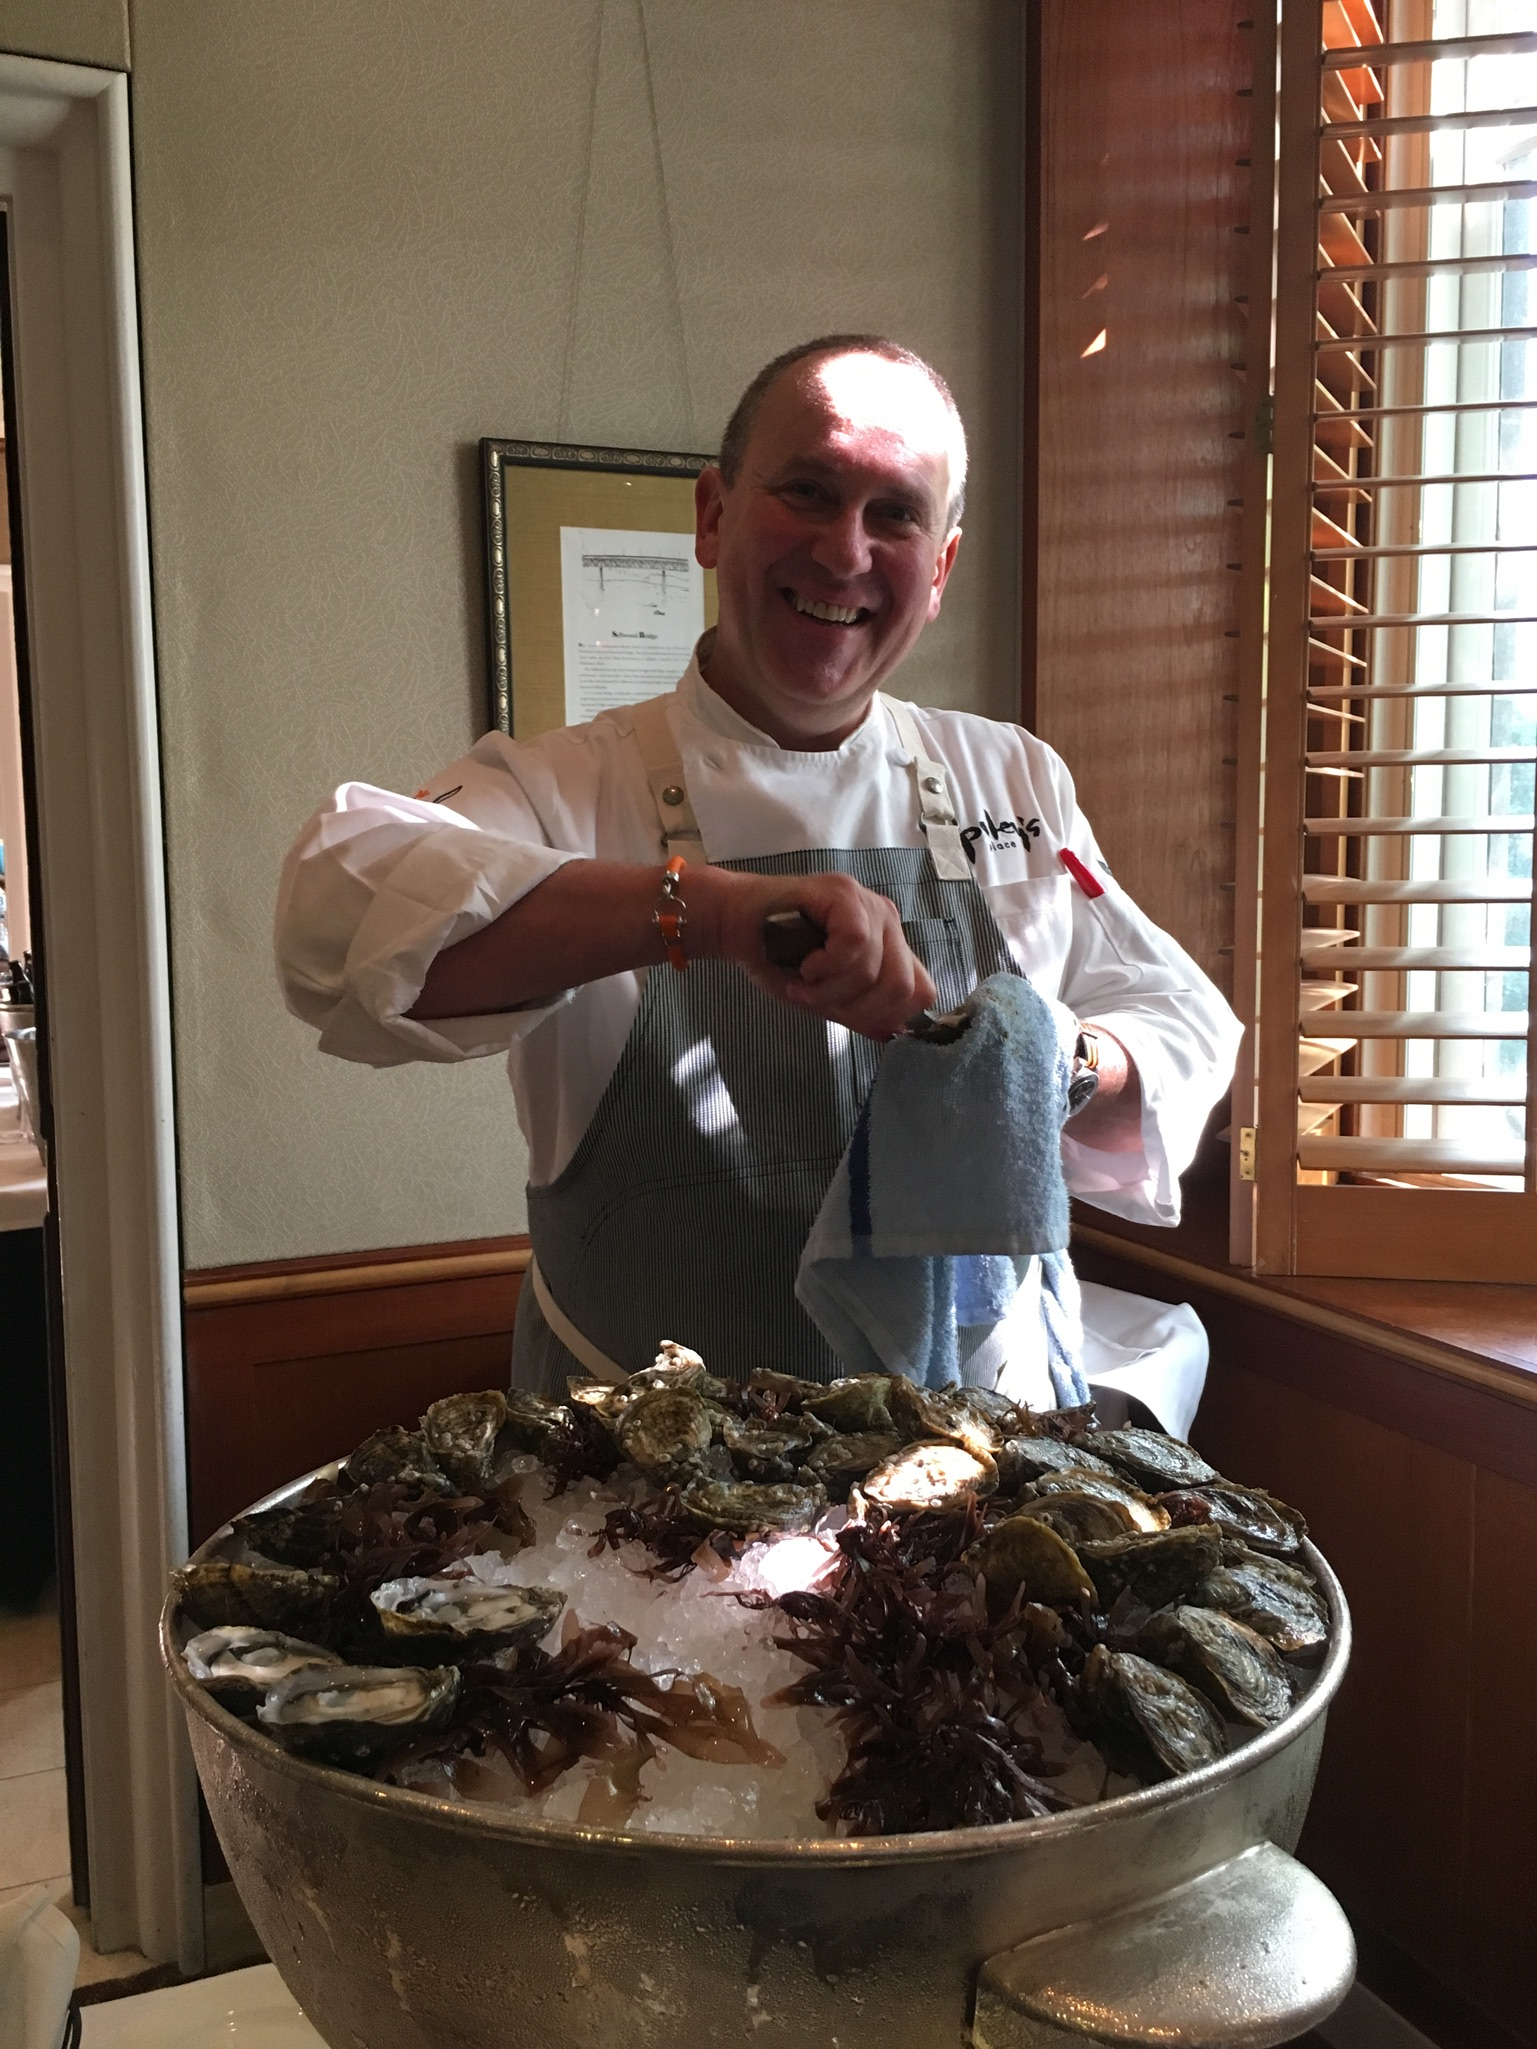 Vitaly Paley shucking oysters prior to the pFriem Beer Dinner at Headwaters. (photo by Cat Stelzer)